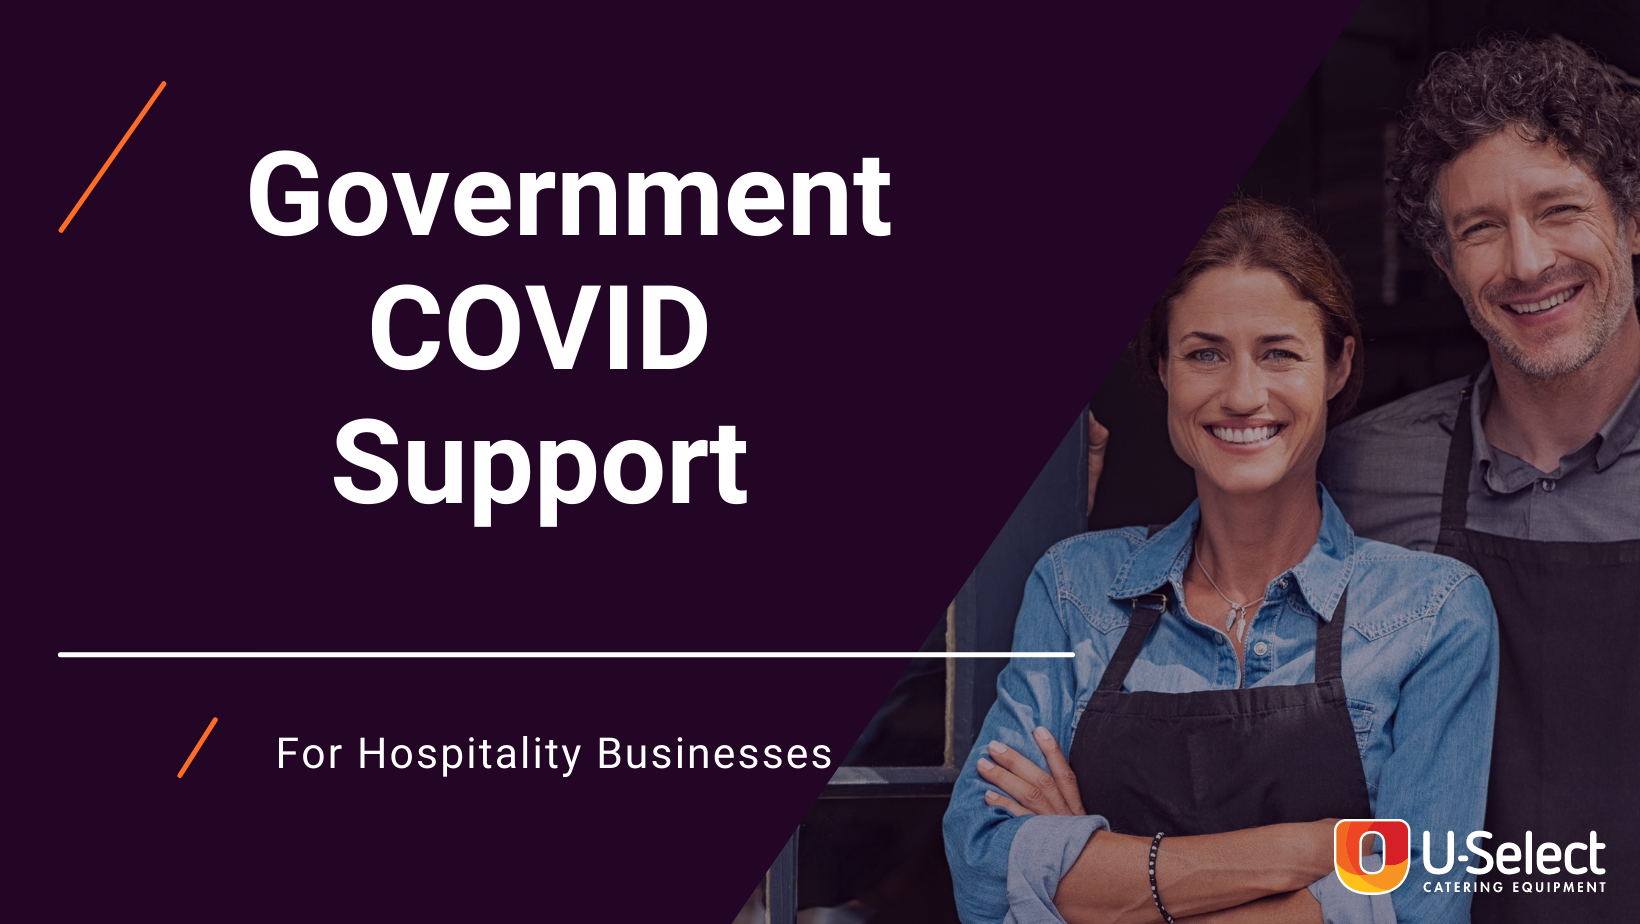 Government COVID Support Schemes for hospitality businesses